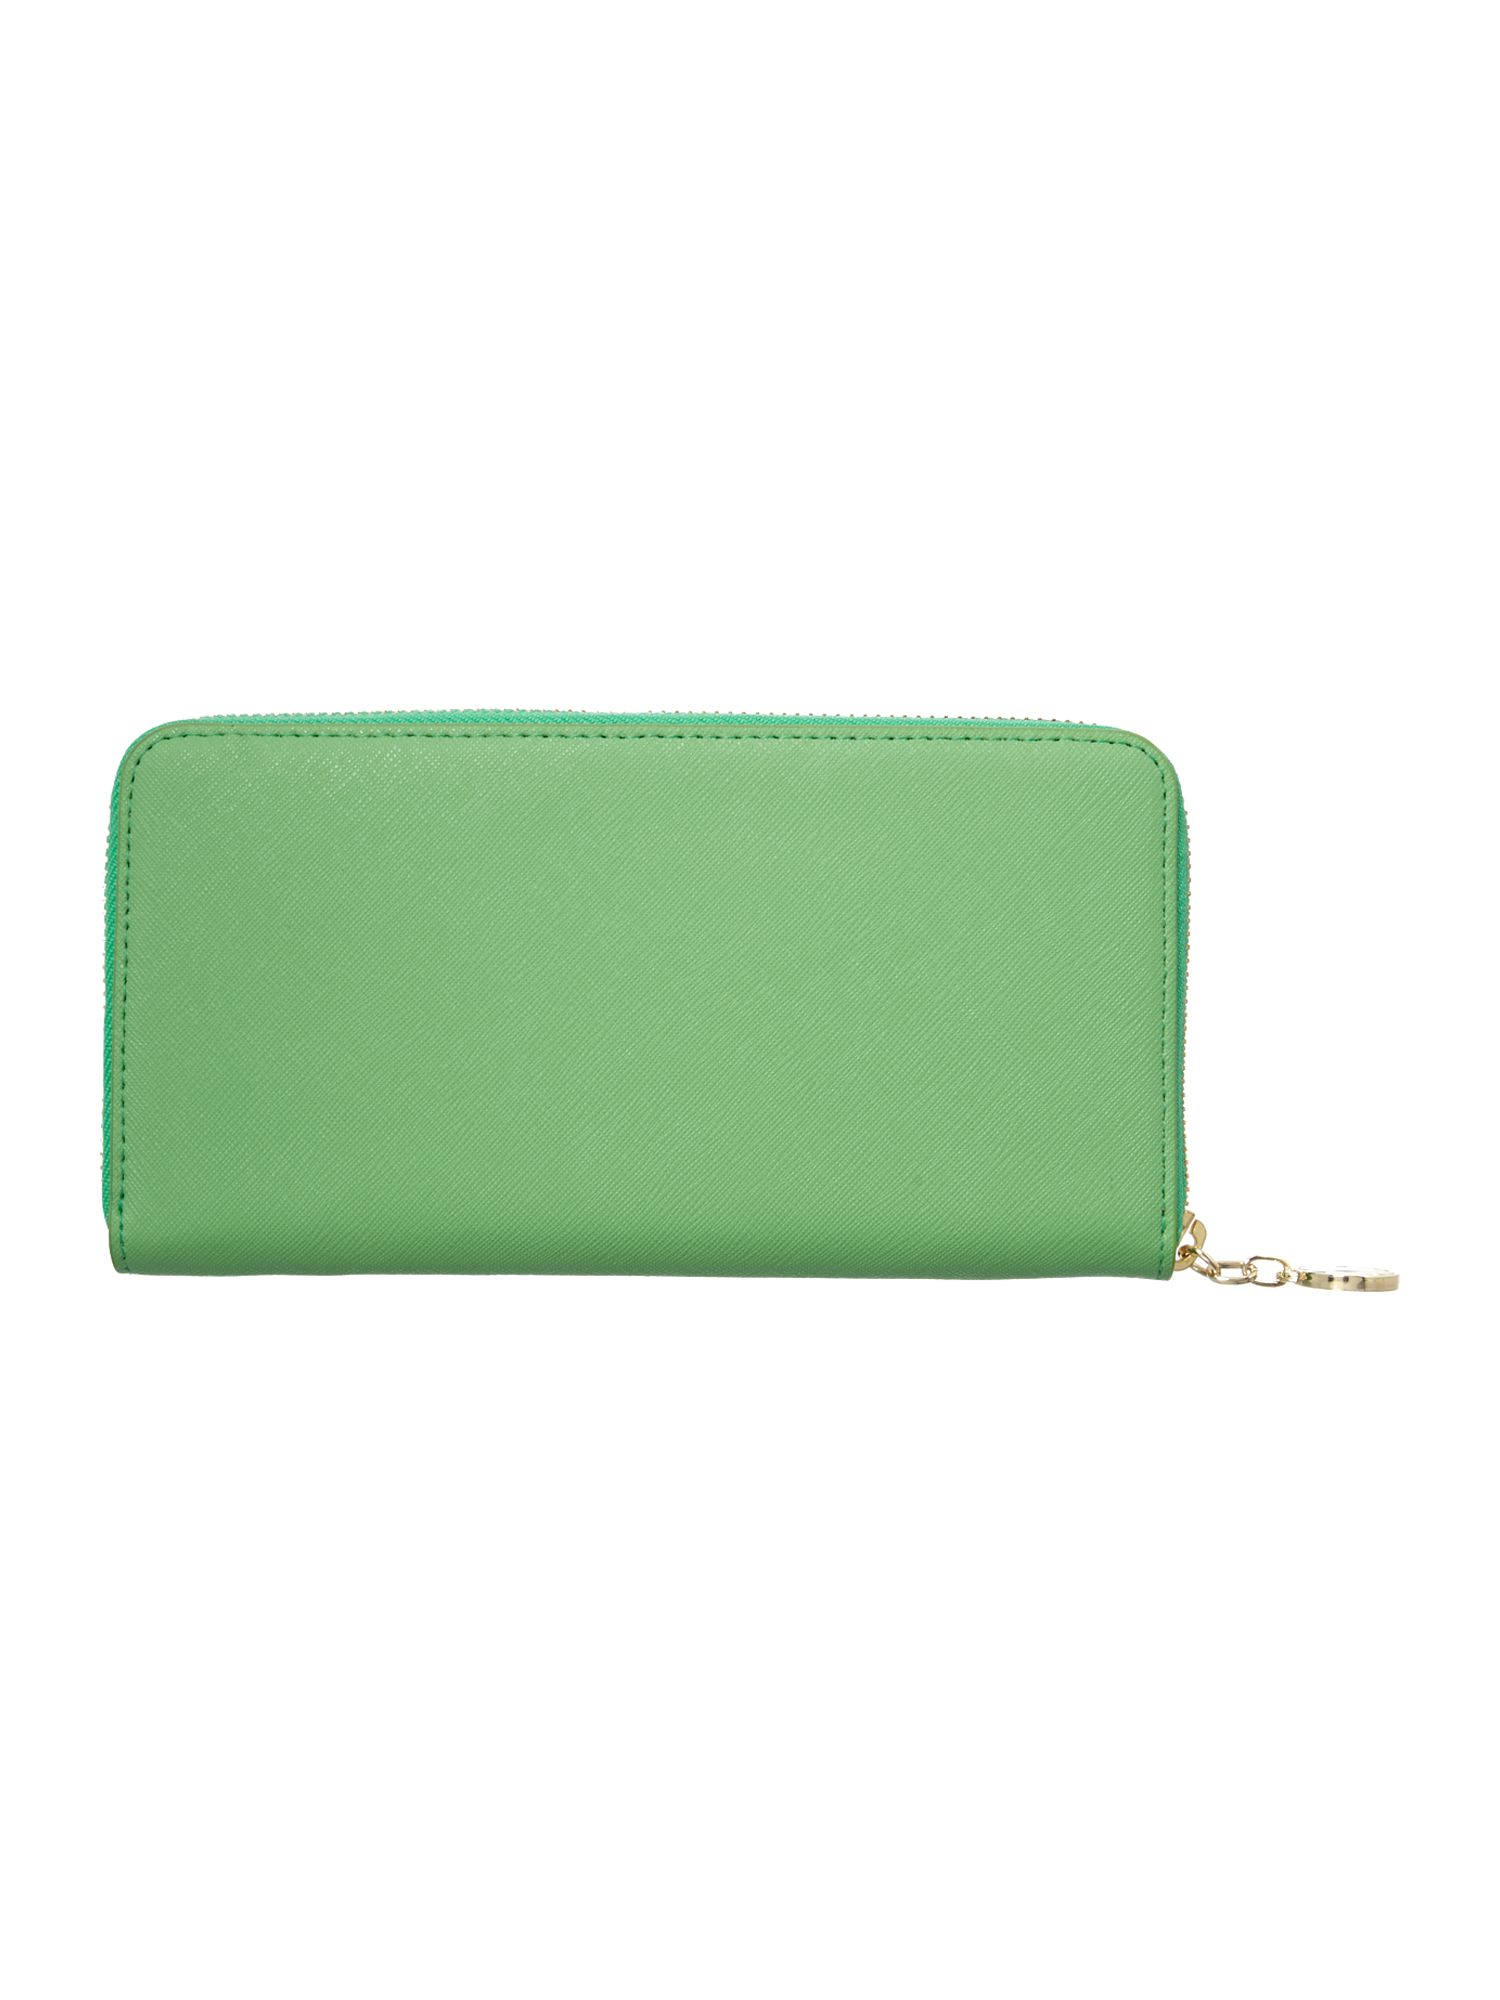 Saffiano green large zip around purse